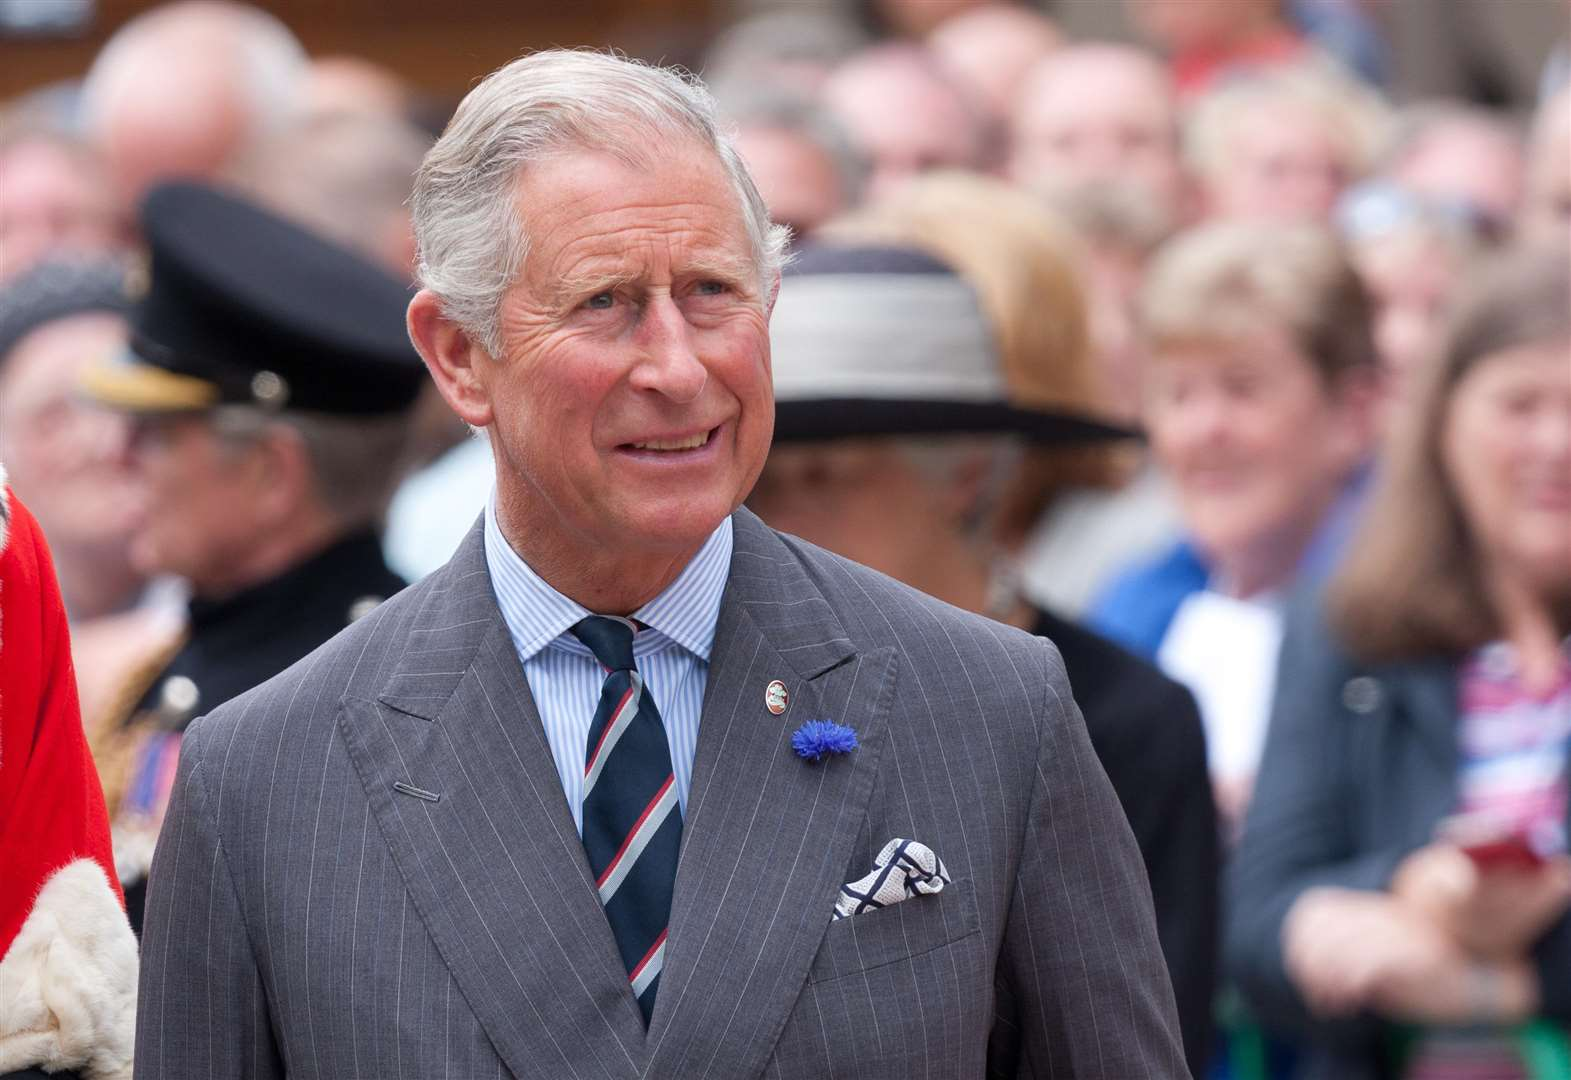 Royal visit will see Prince Charles visit cathedral